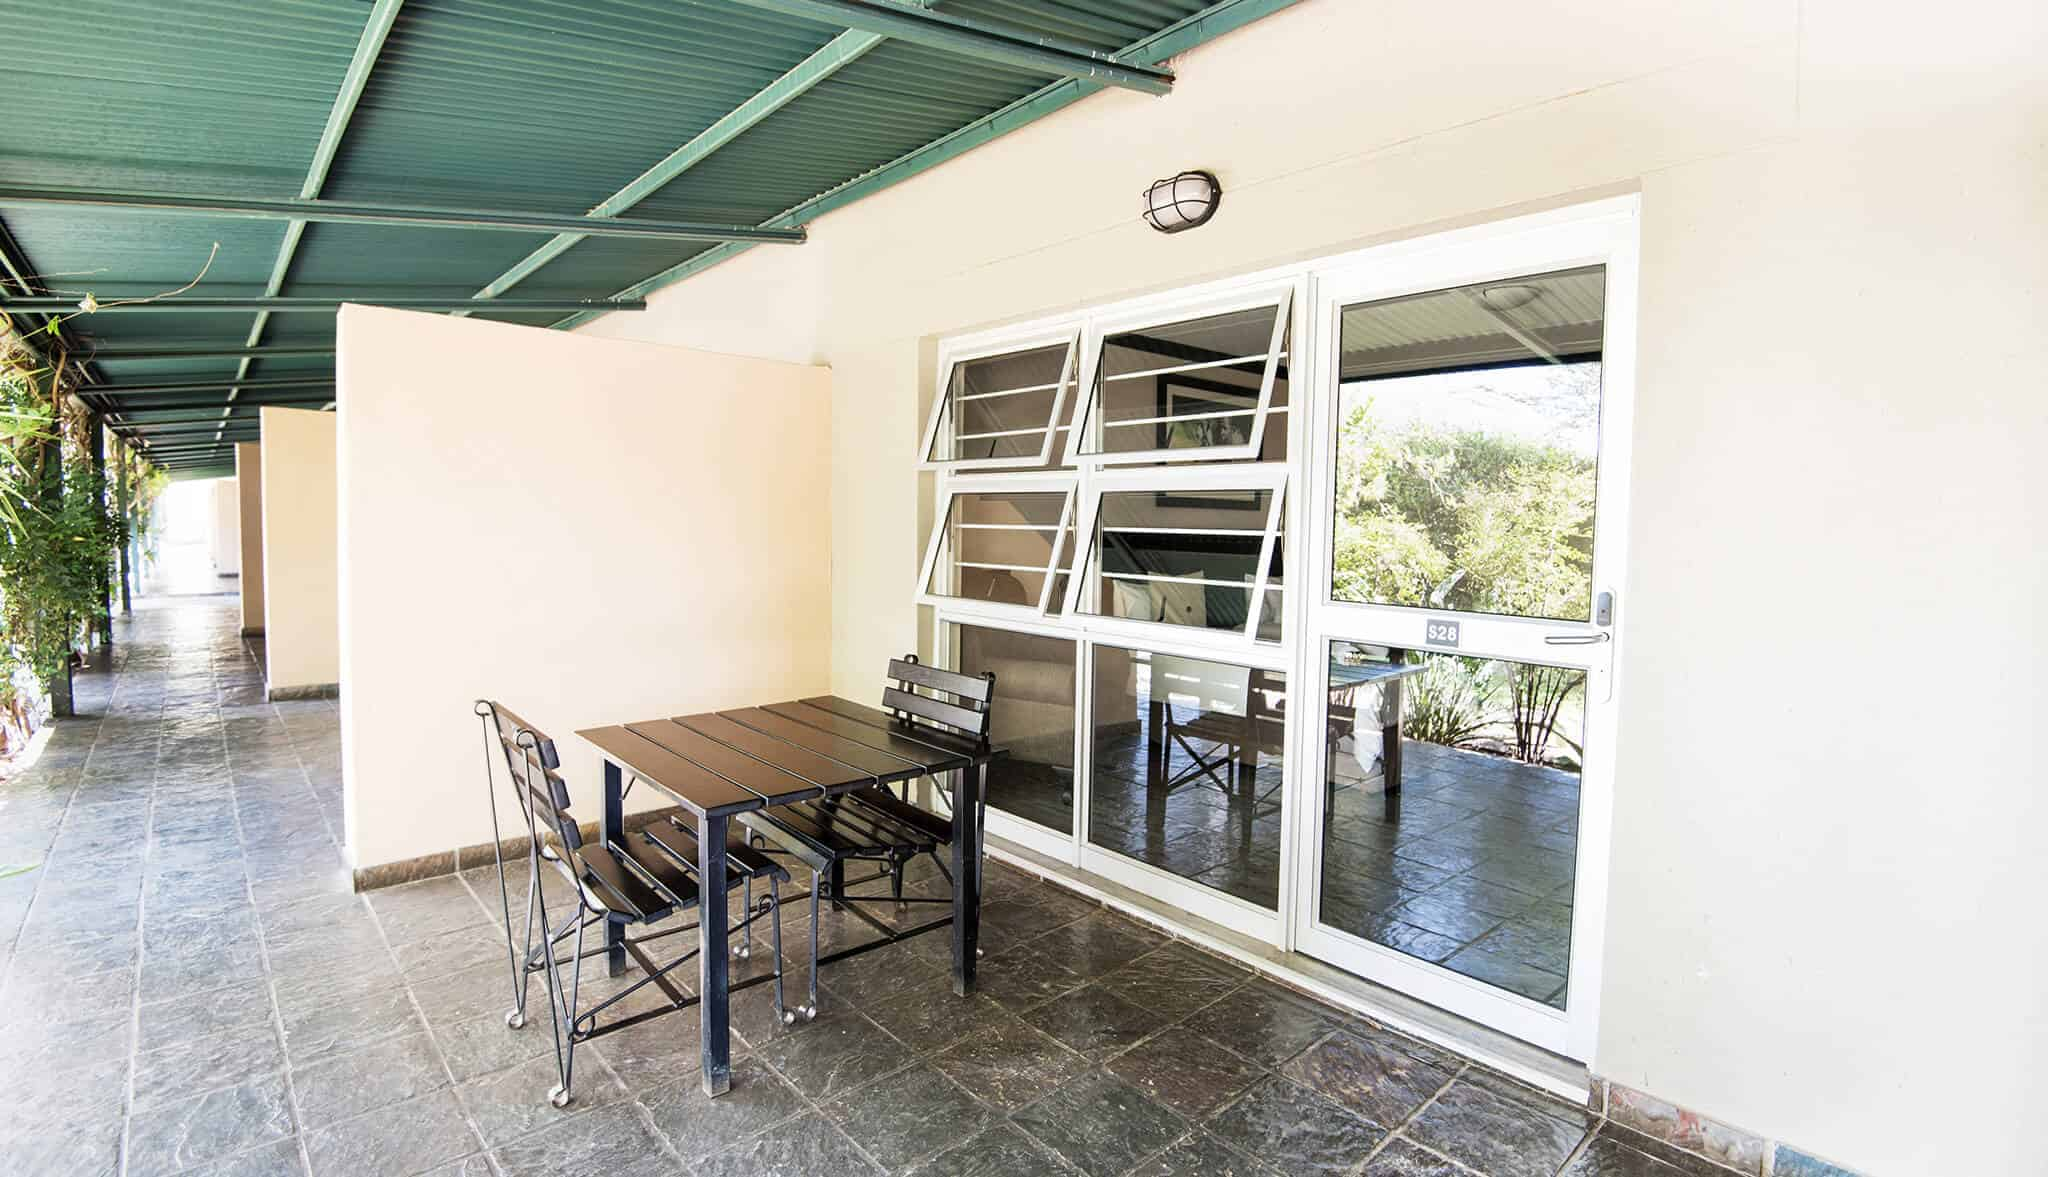 Luxury Room | Patio | Bed & Breakfast Accommodation In Windhoek | Arebbusch Travel Lodge